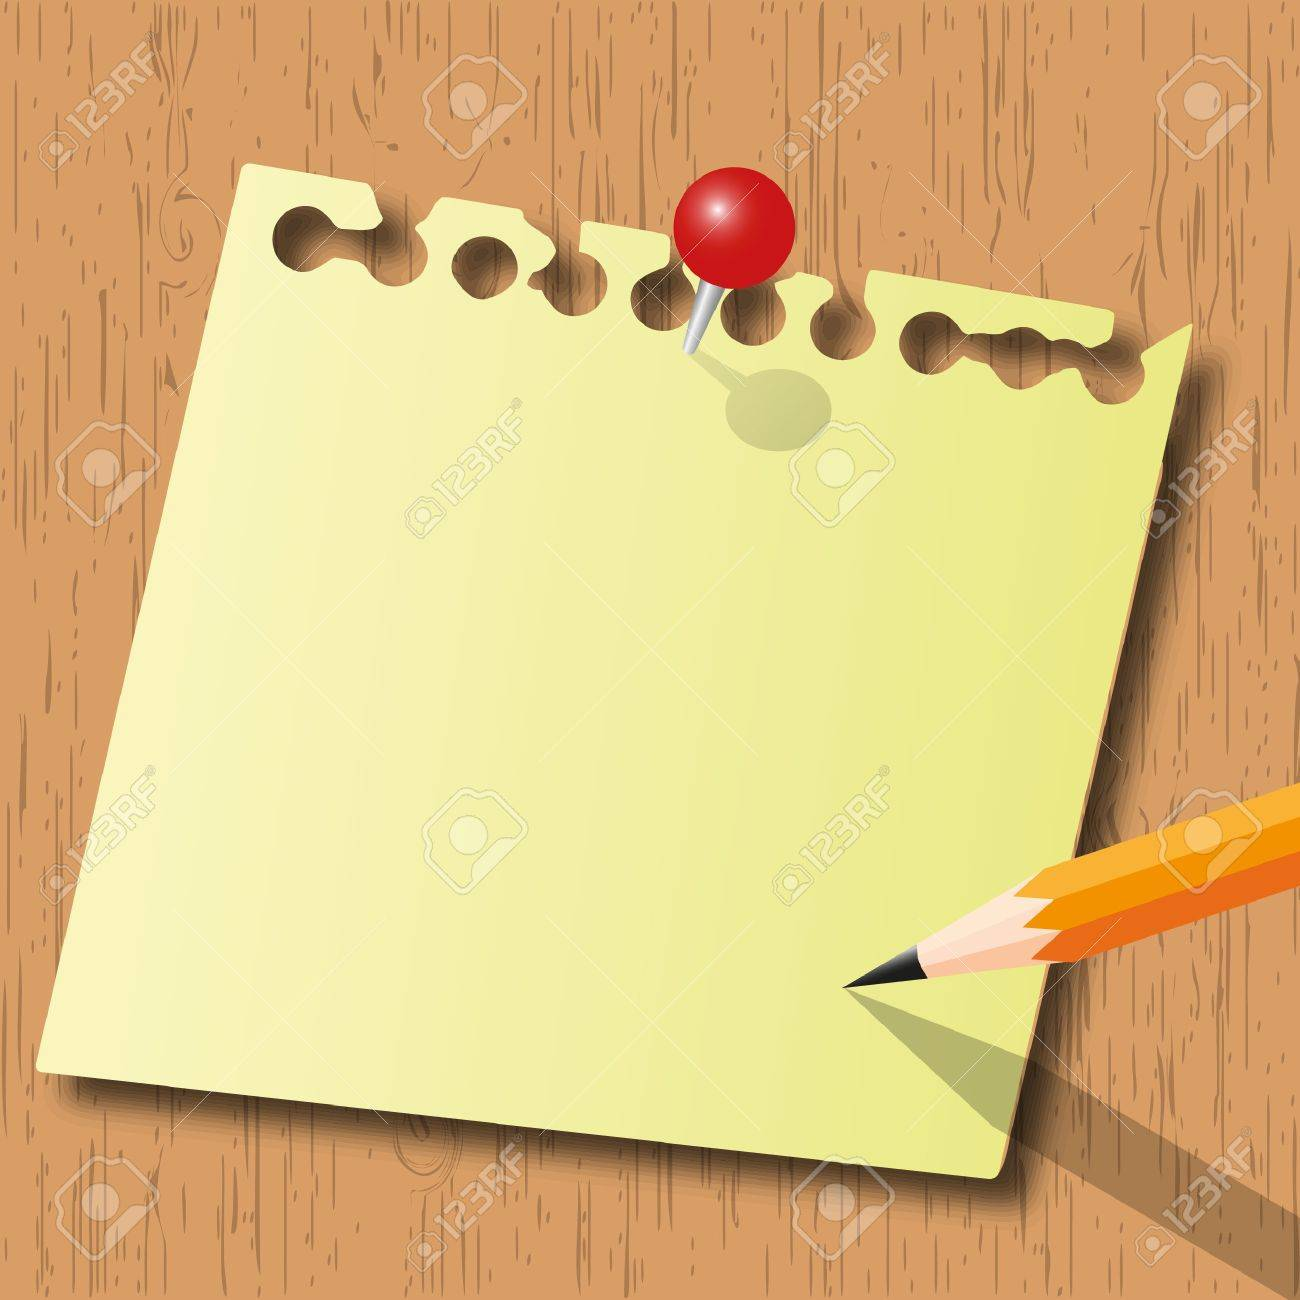 Note pad and pencil with red pin on wood board. Stock Vector - 12035260